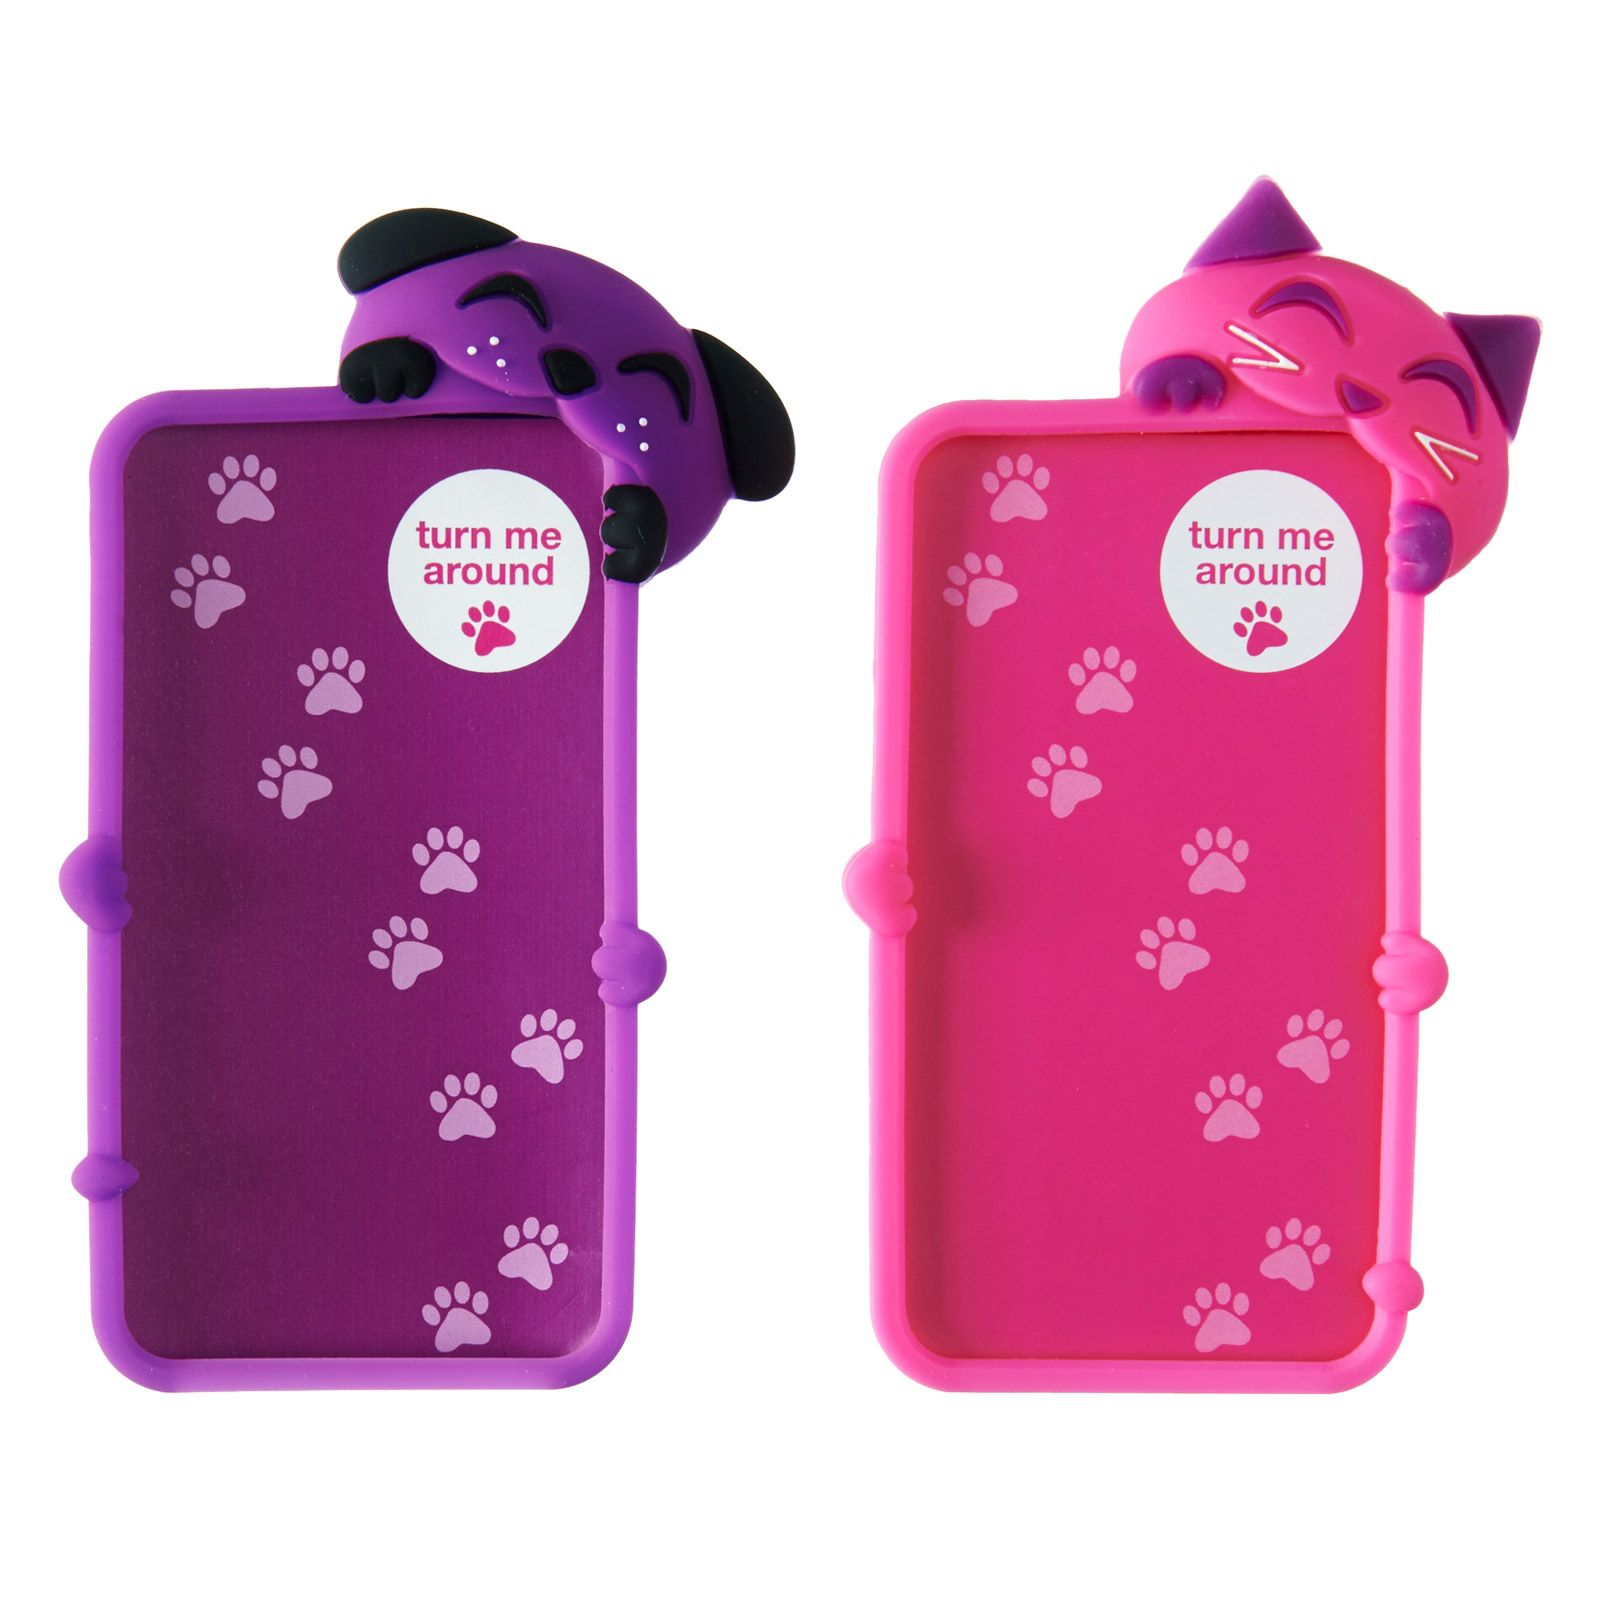 Cats And Dogs Touch Cover 4 Smiggle Iphone cases